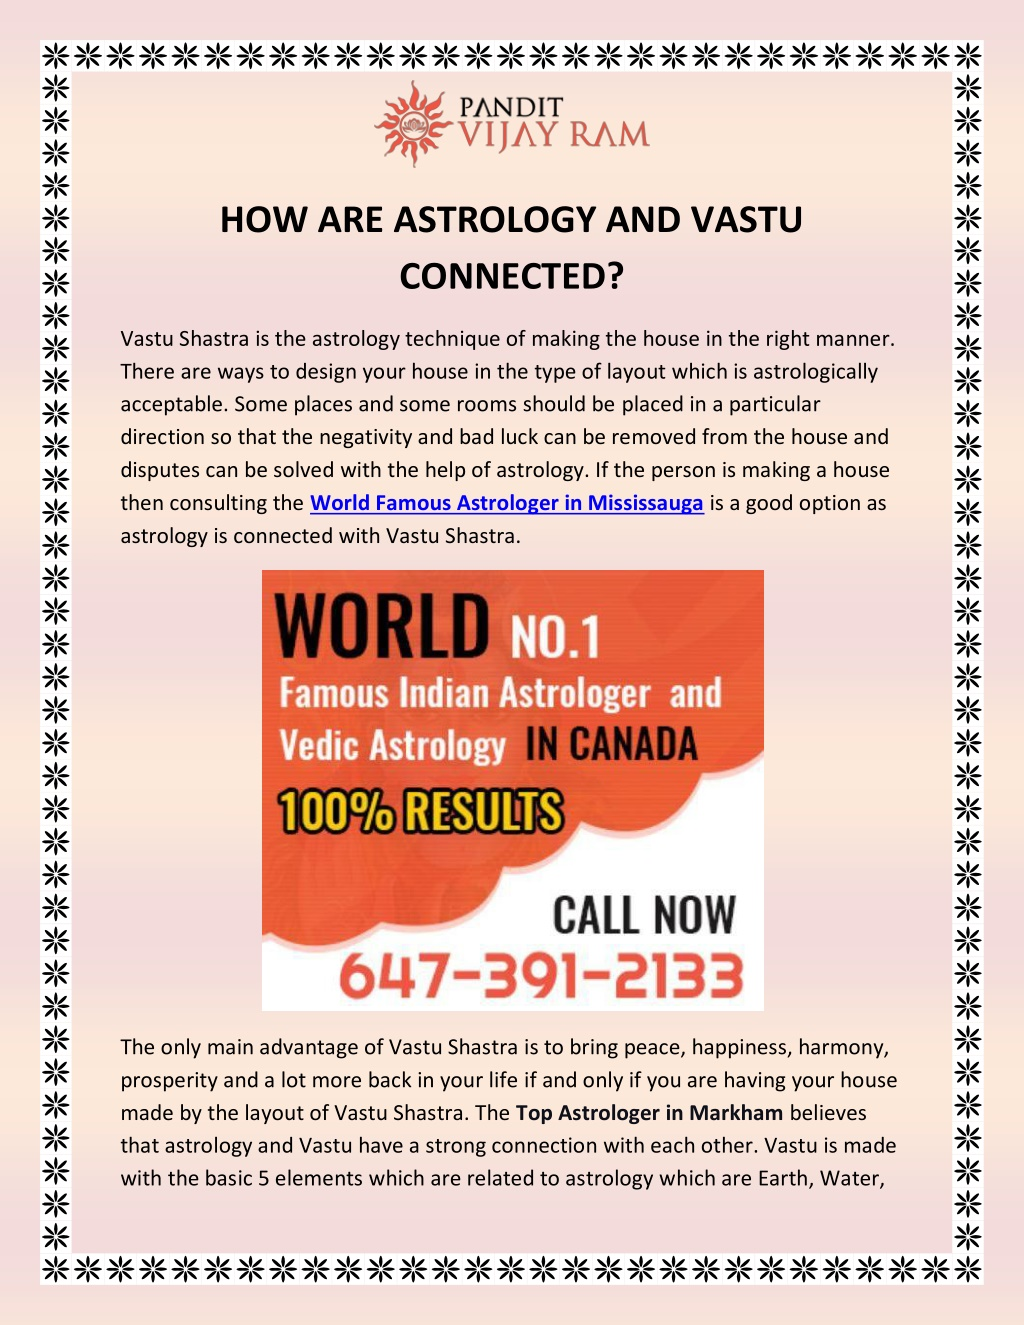 PPT - How Are Astrology and Vastu Connected? PowerPoint Presentation, free download - ID:9793725